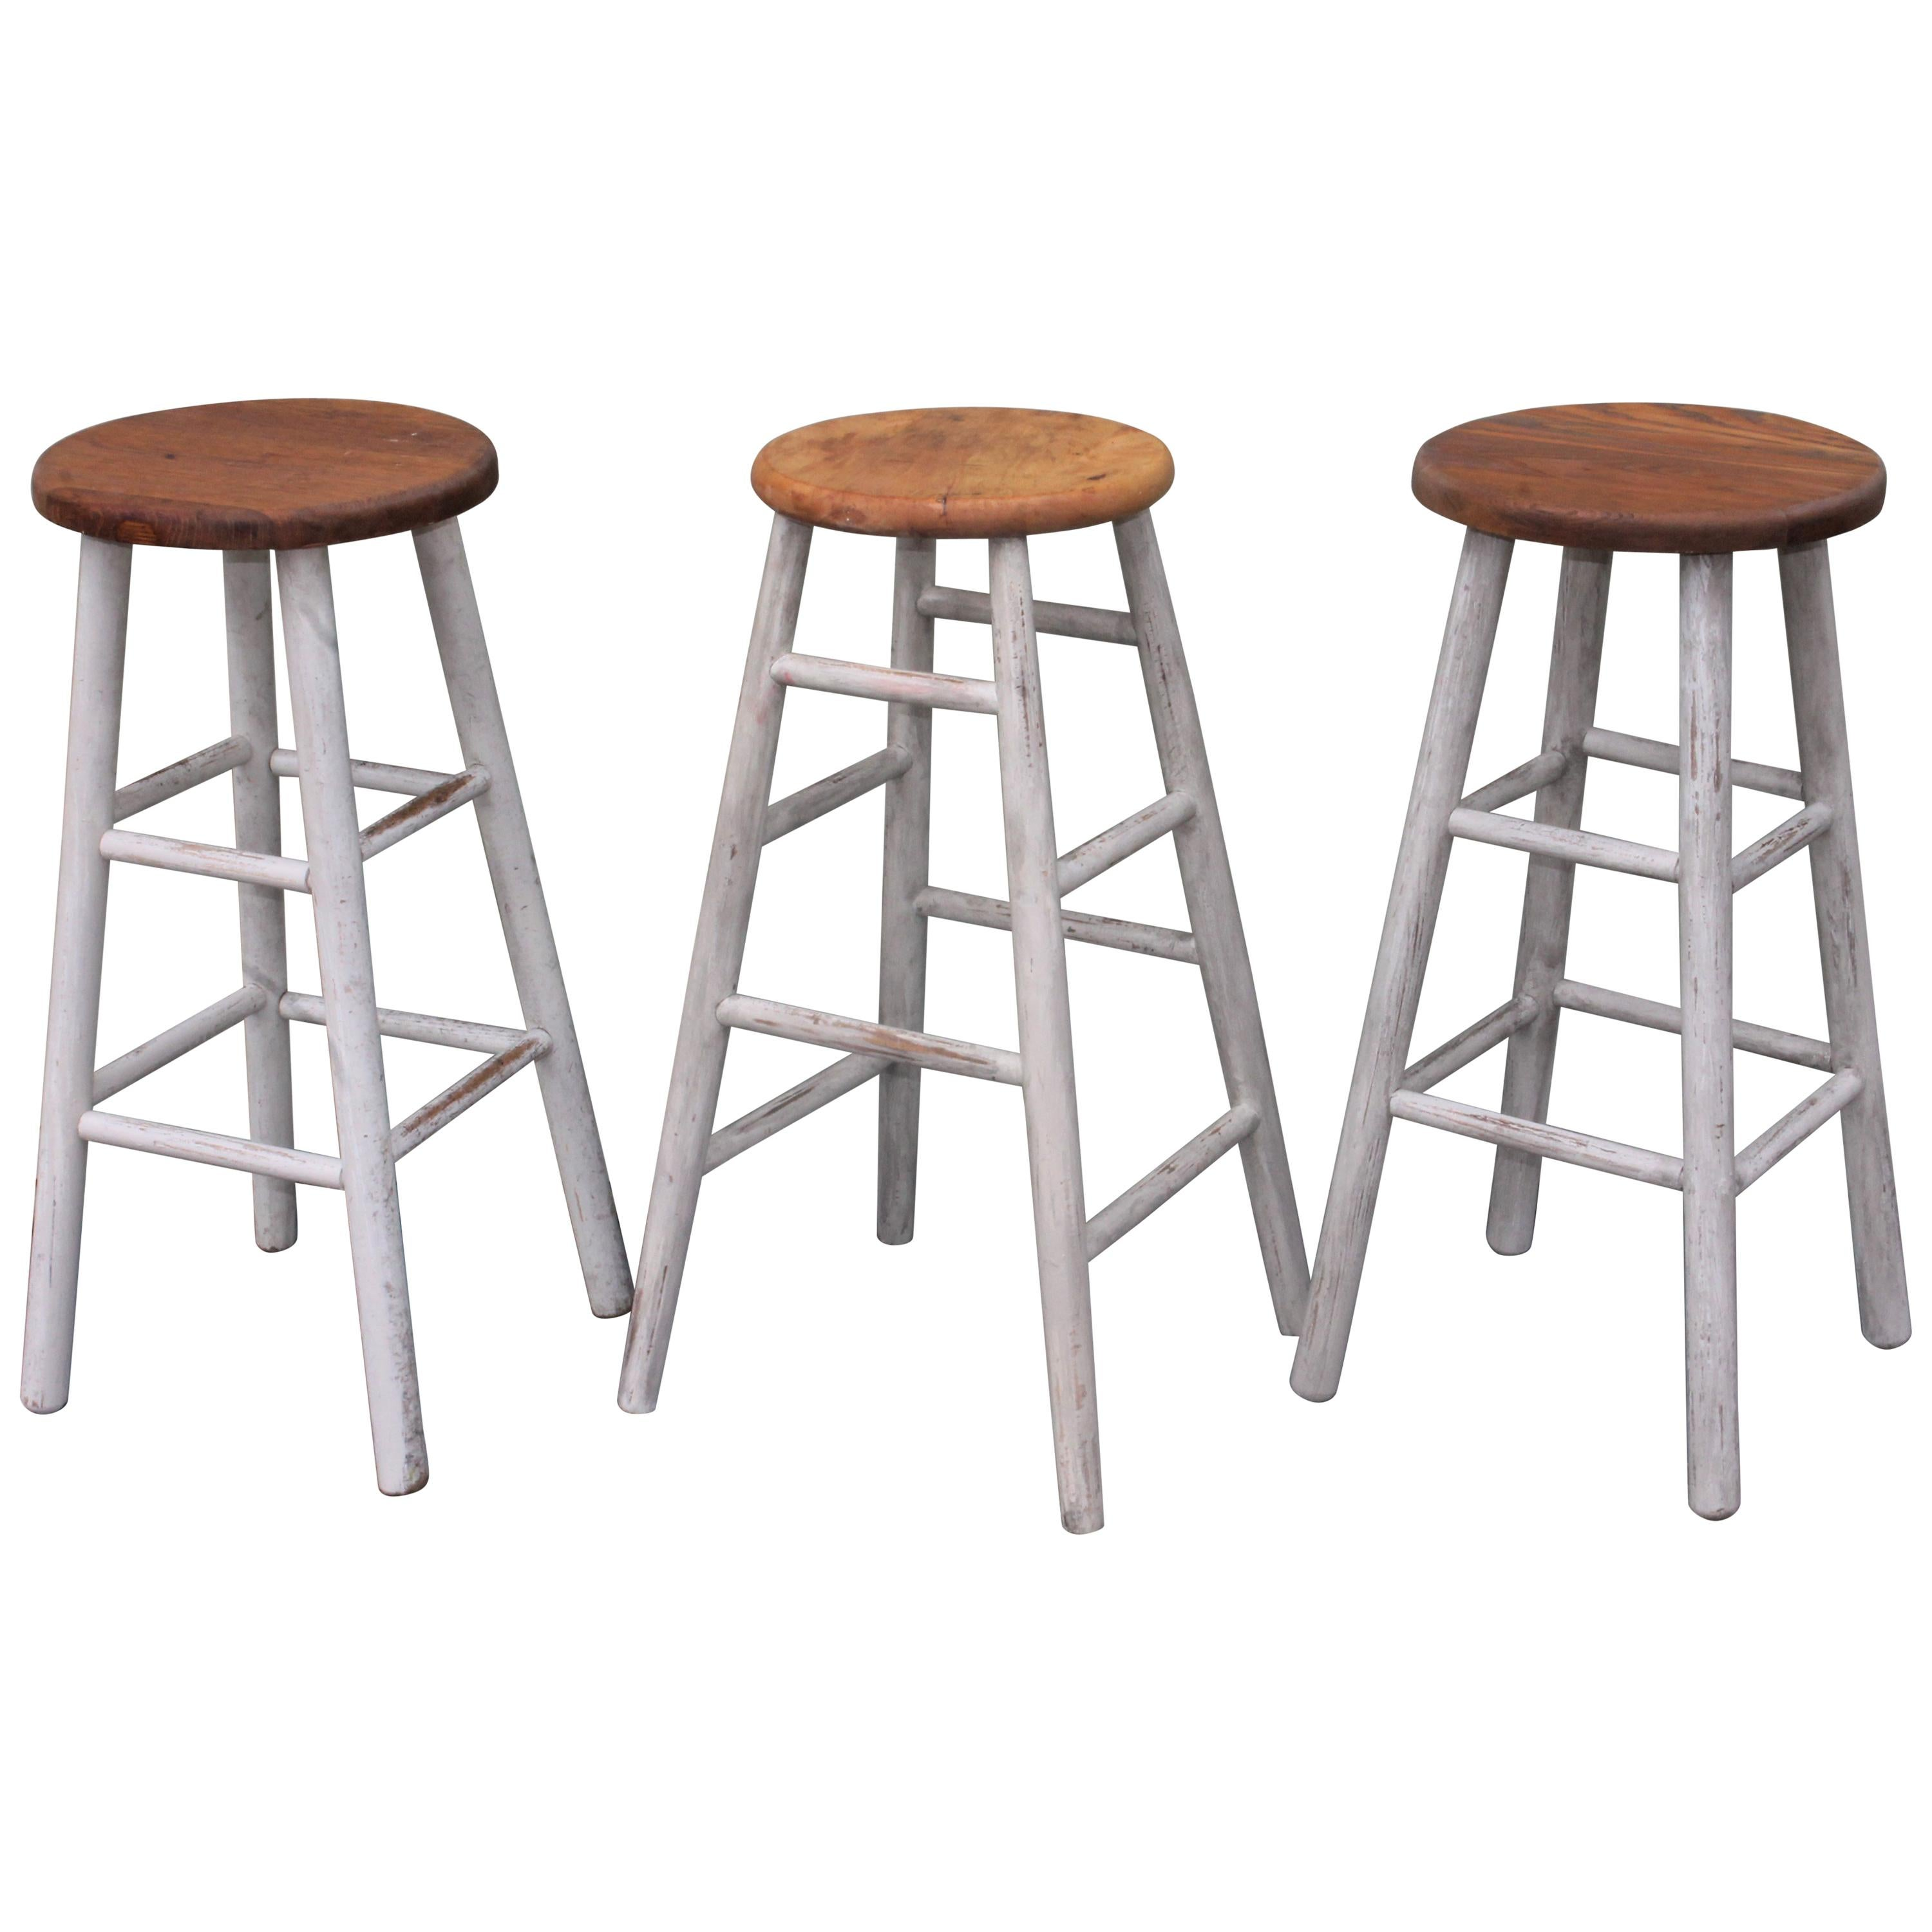 Collection of Three Original White Painted Bar Stools